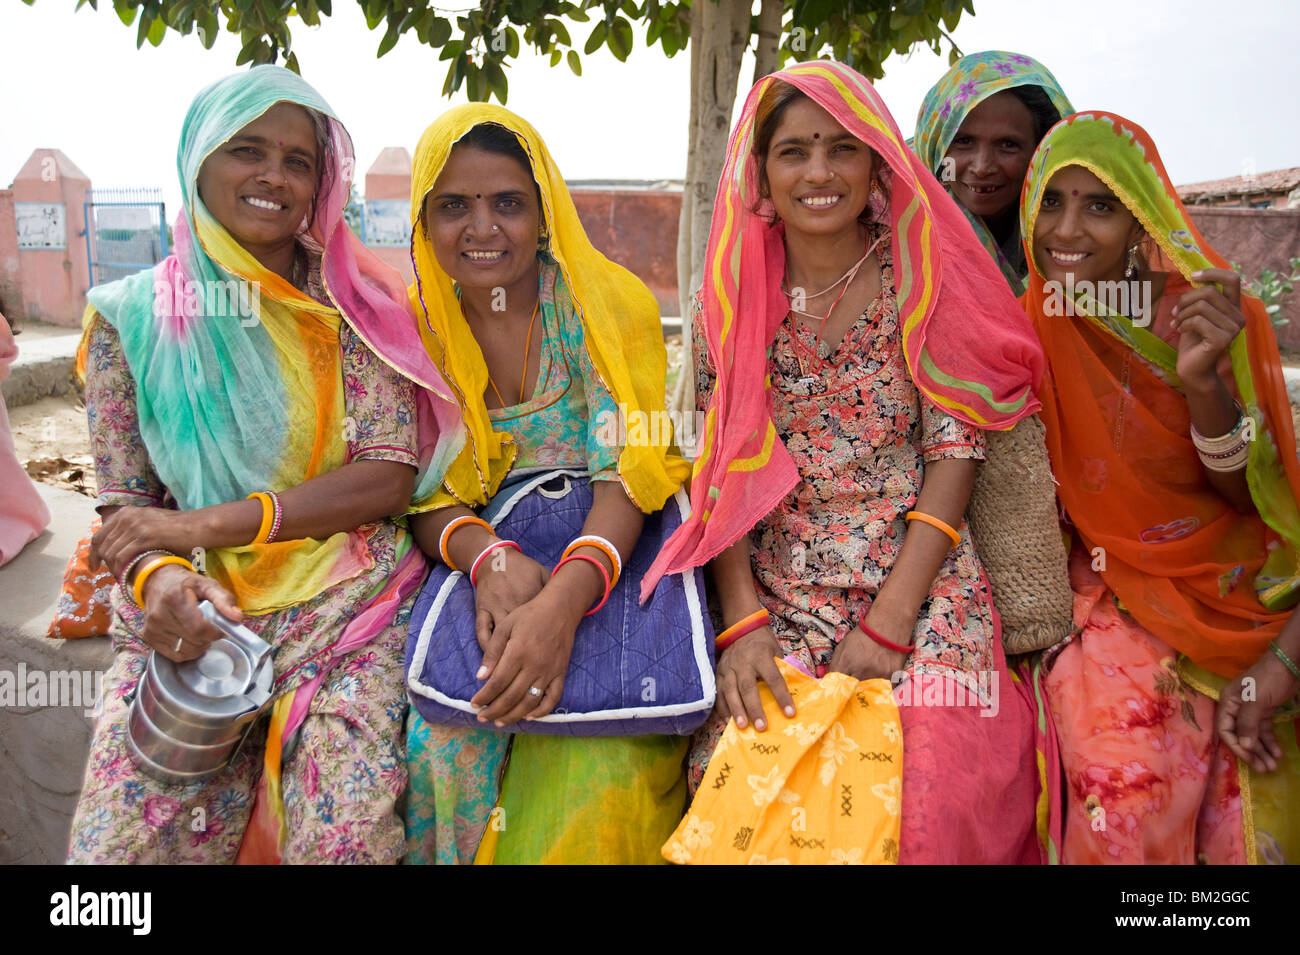 Women waiting for village jeep after their morning shift working with cows, Binawas, Rajasthan, India - Stock Image